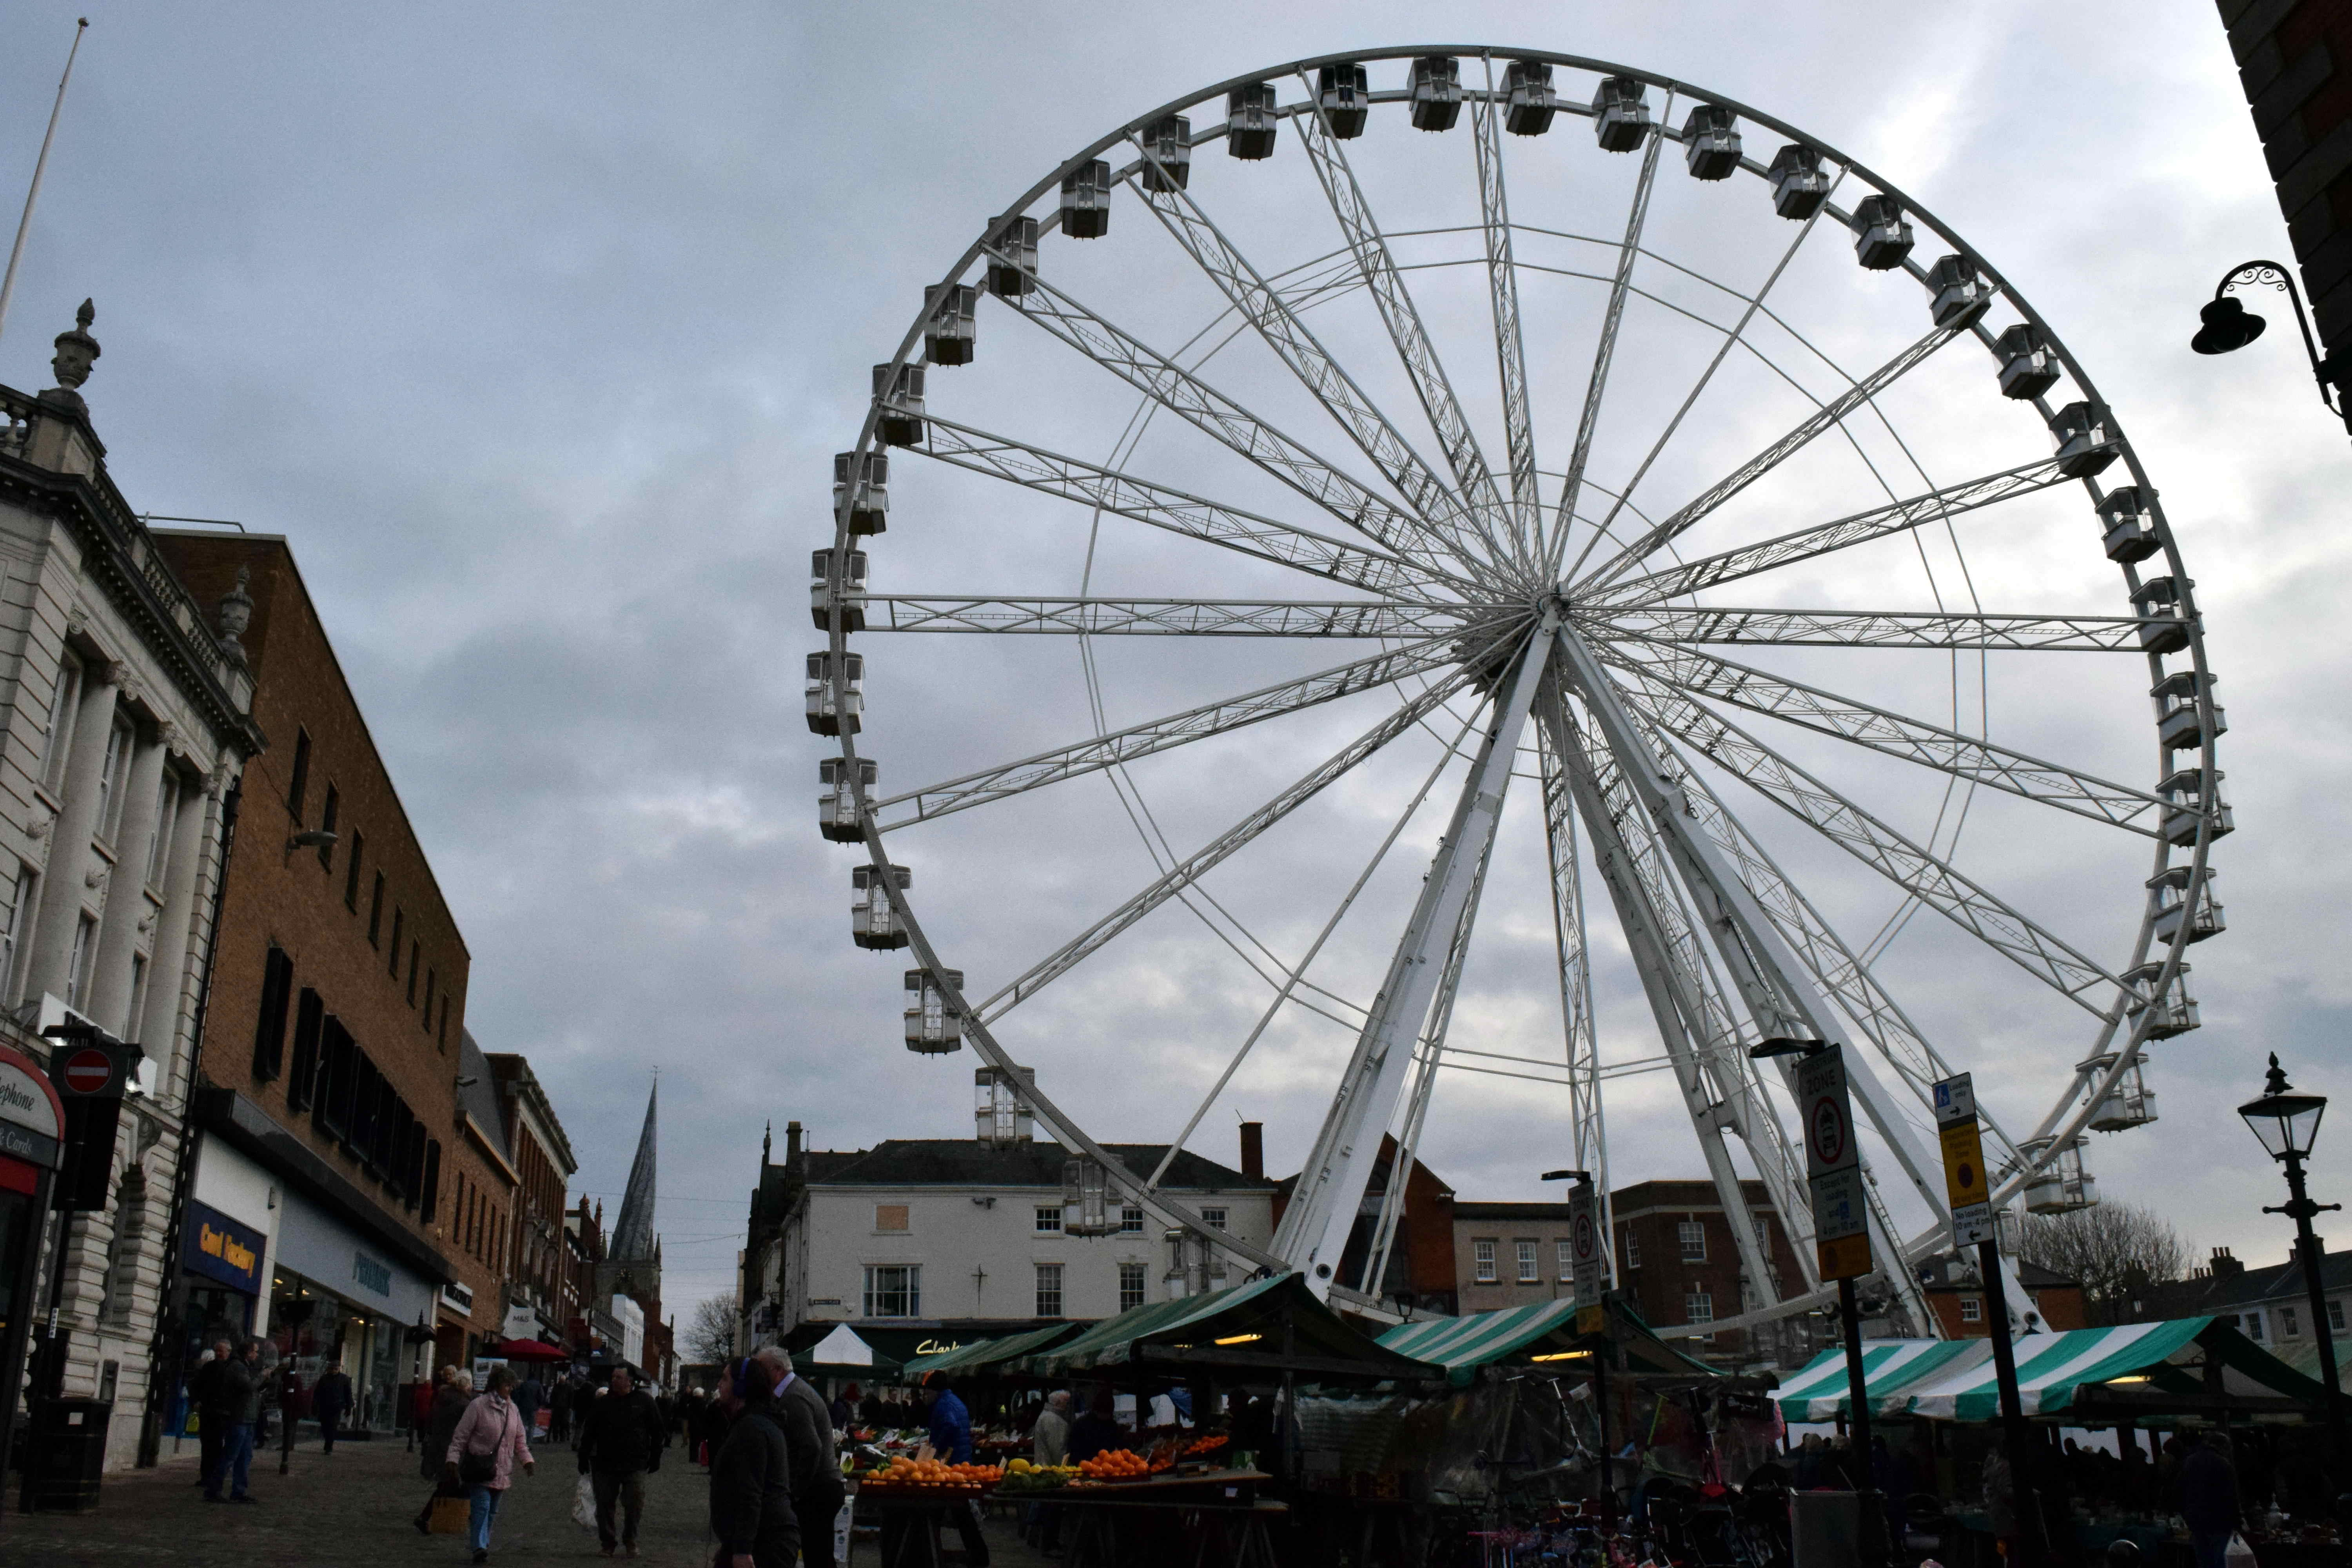 Chesterfield Observation Wheel